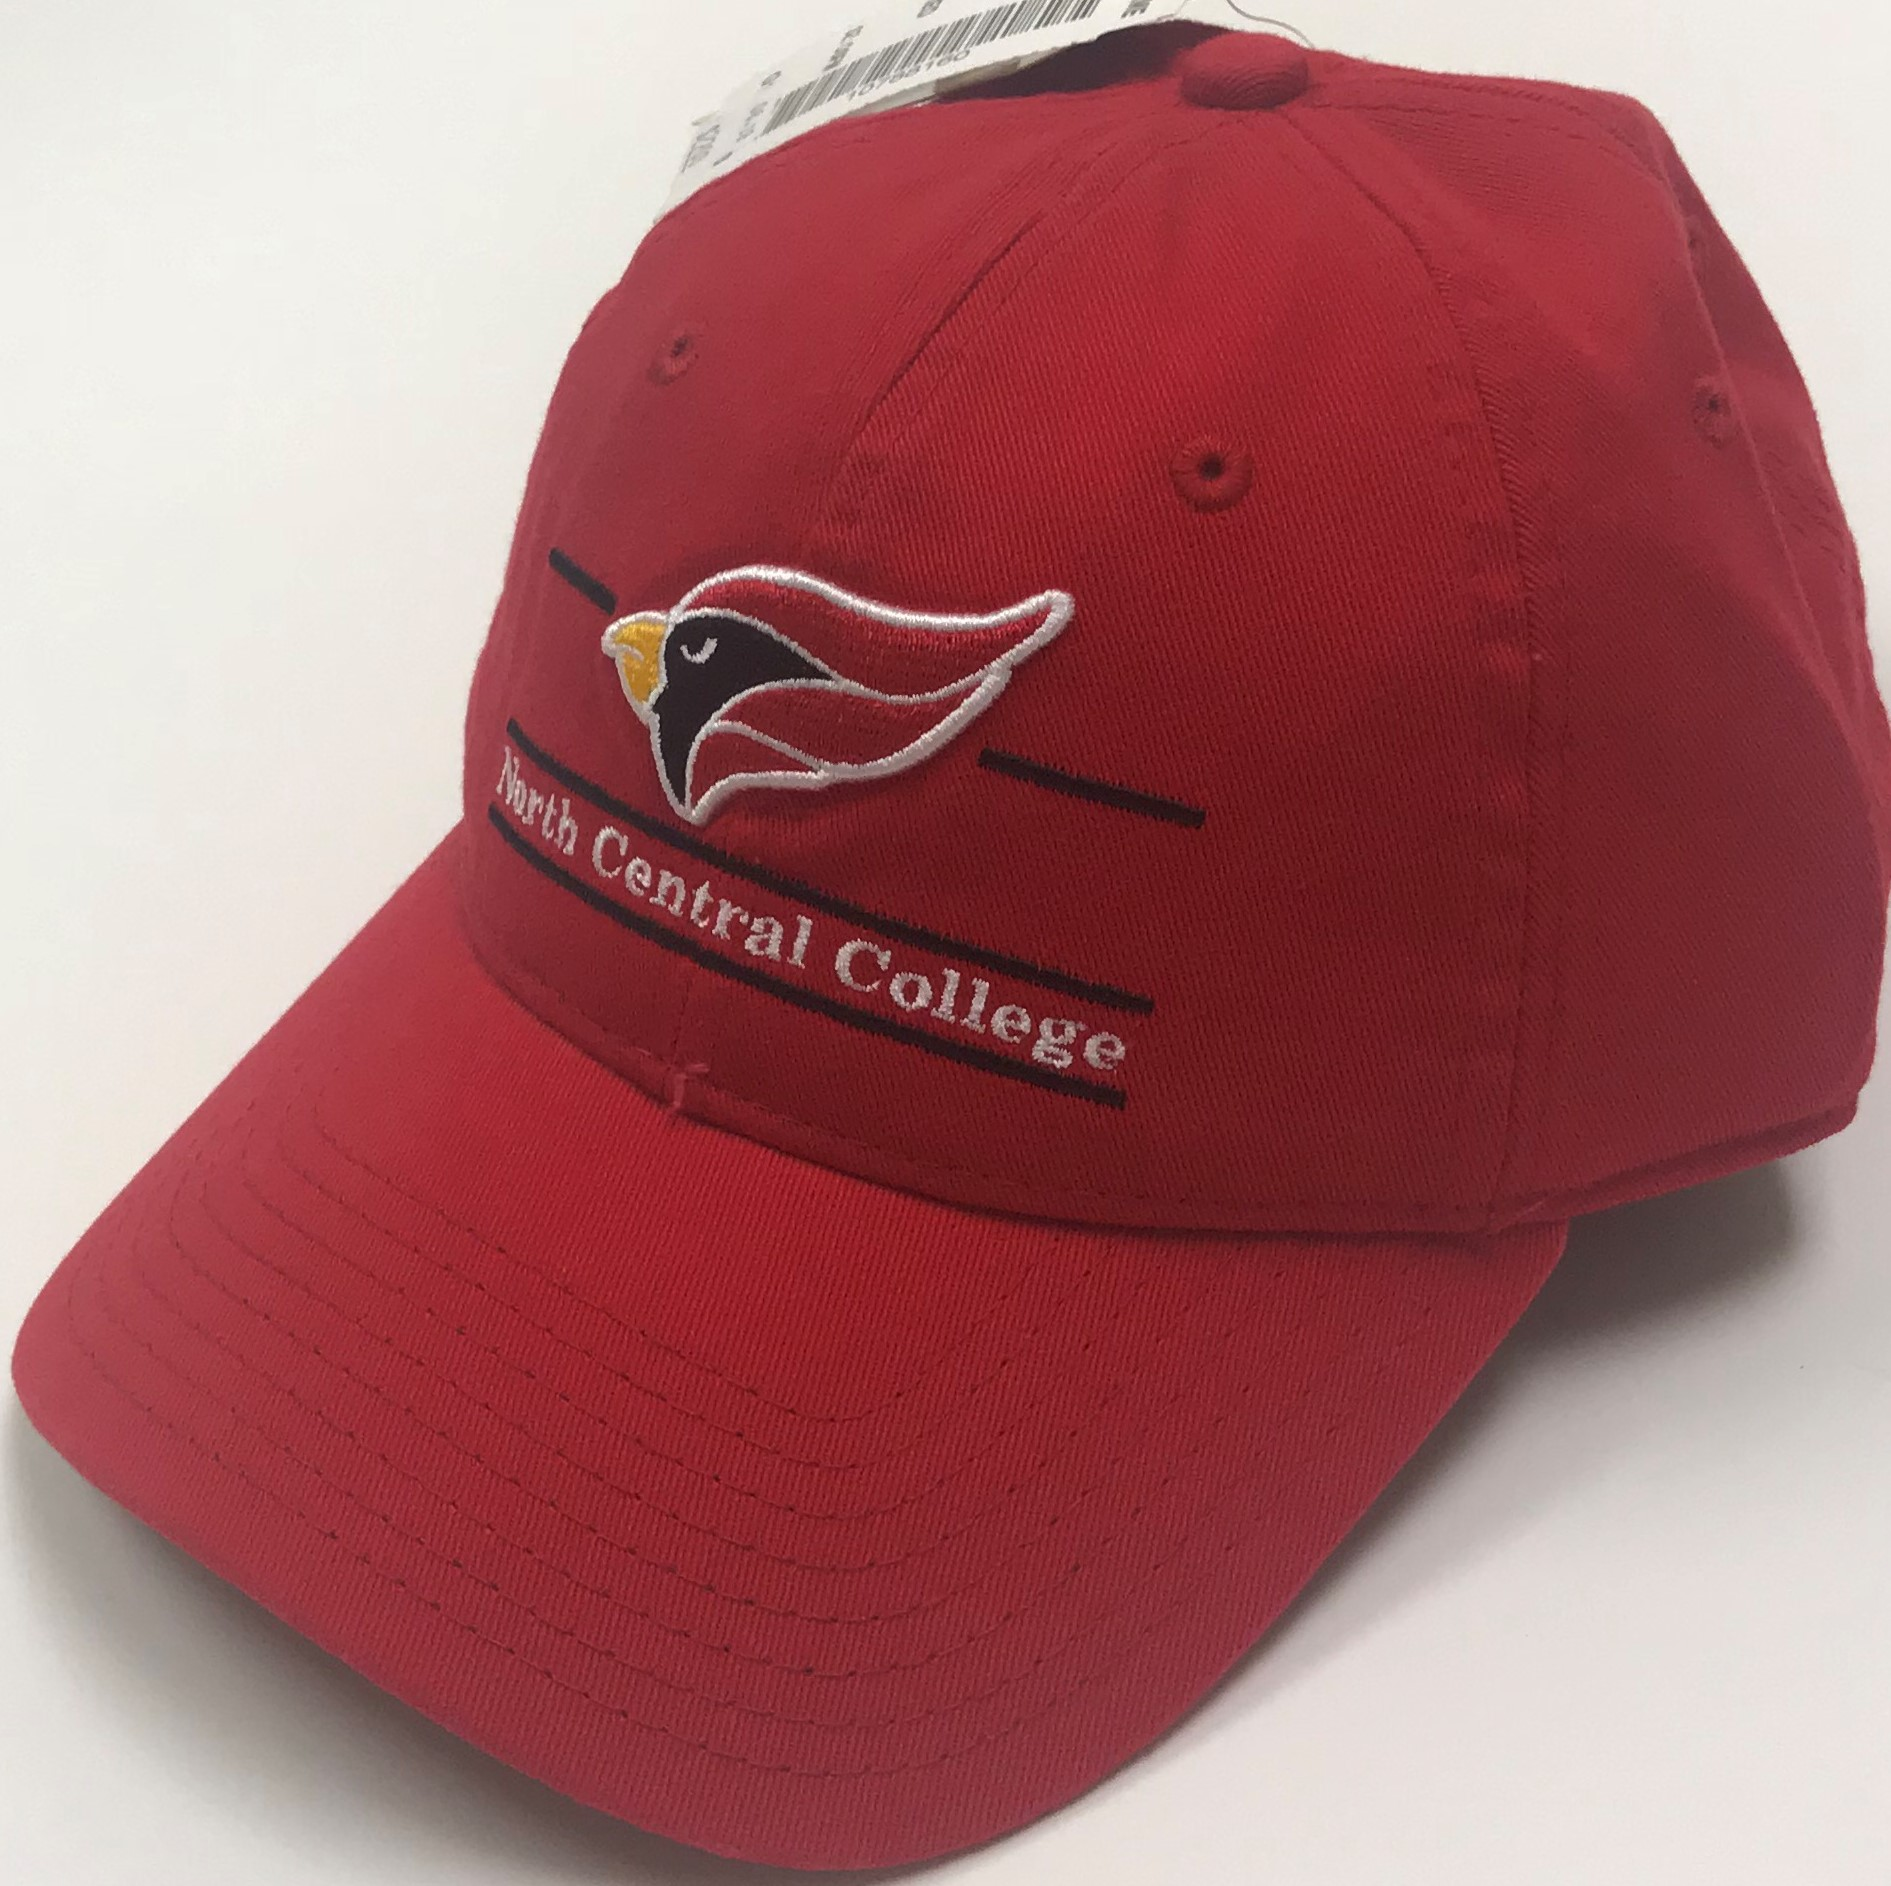 Image for the North Central College Red Adj Hat w/Cardinal by The Game product